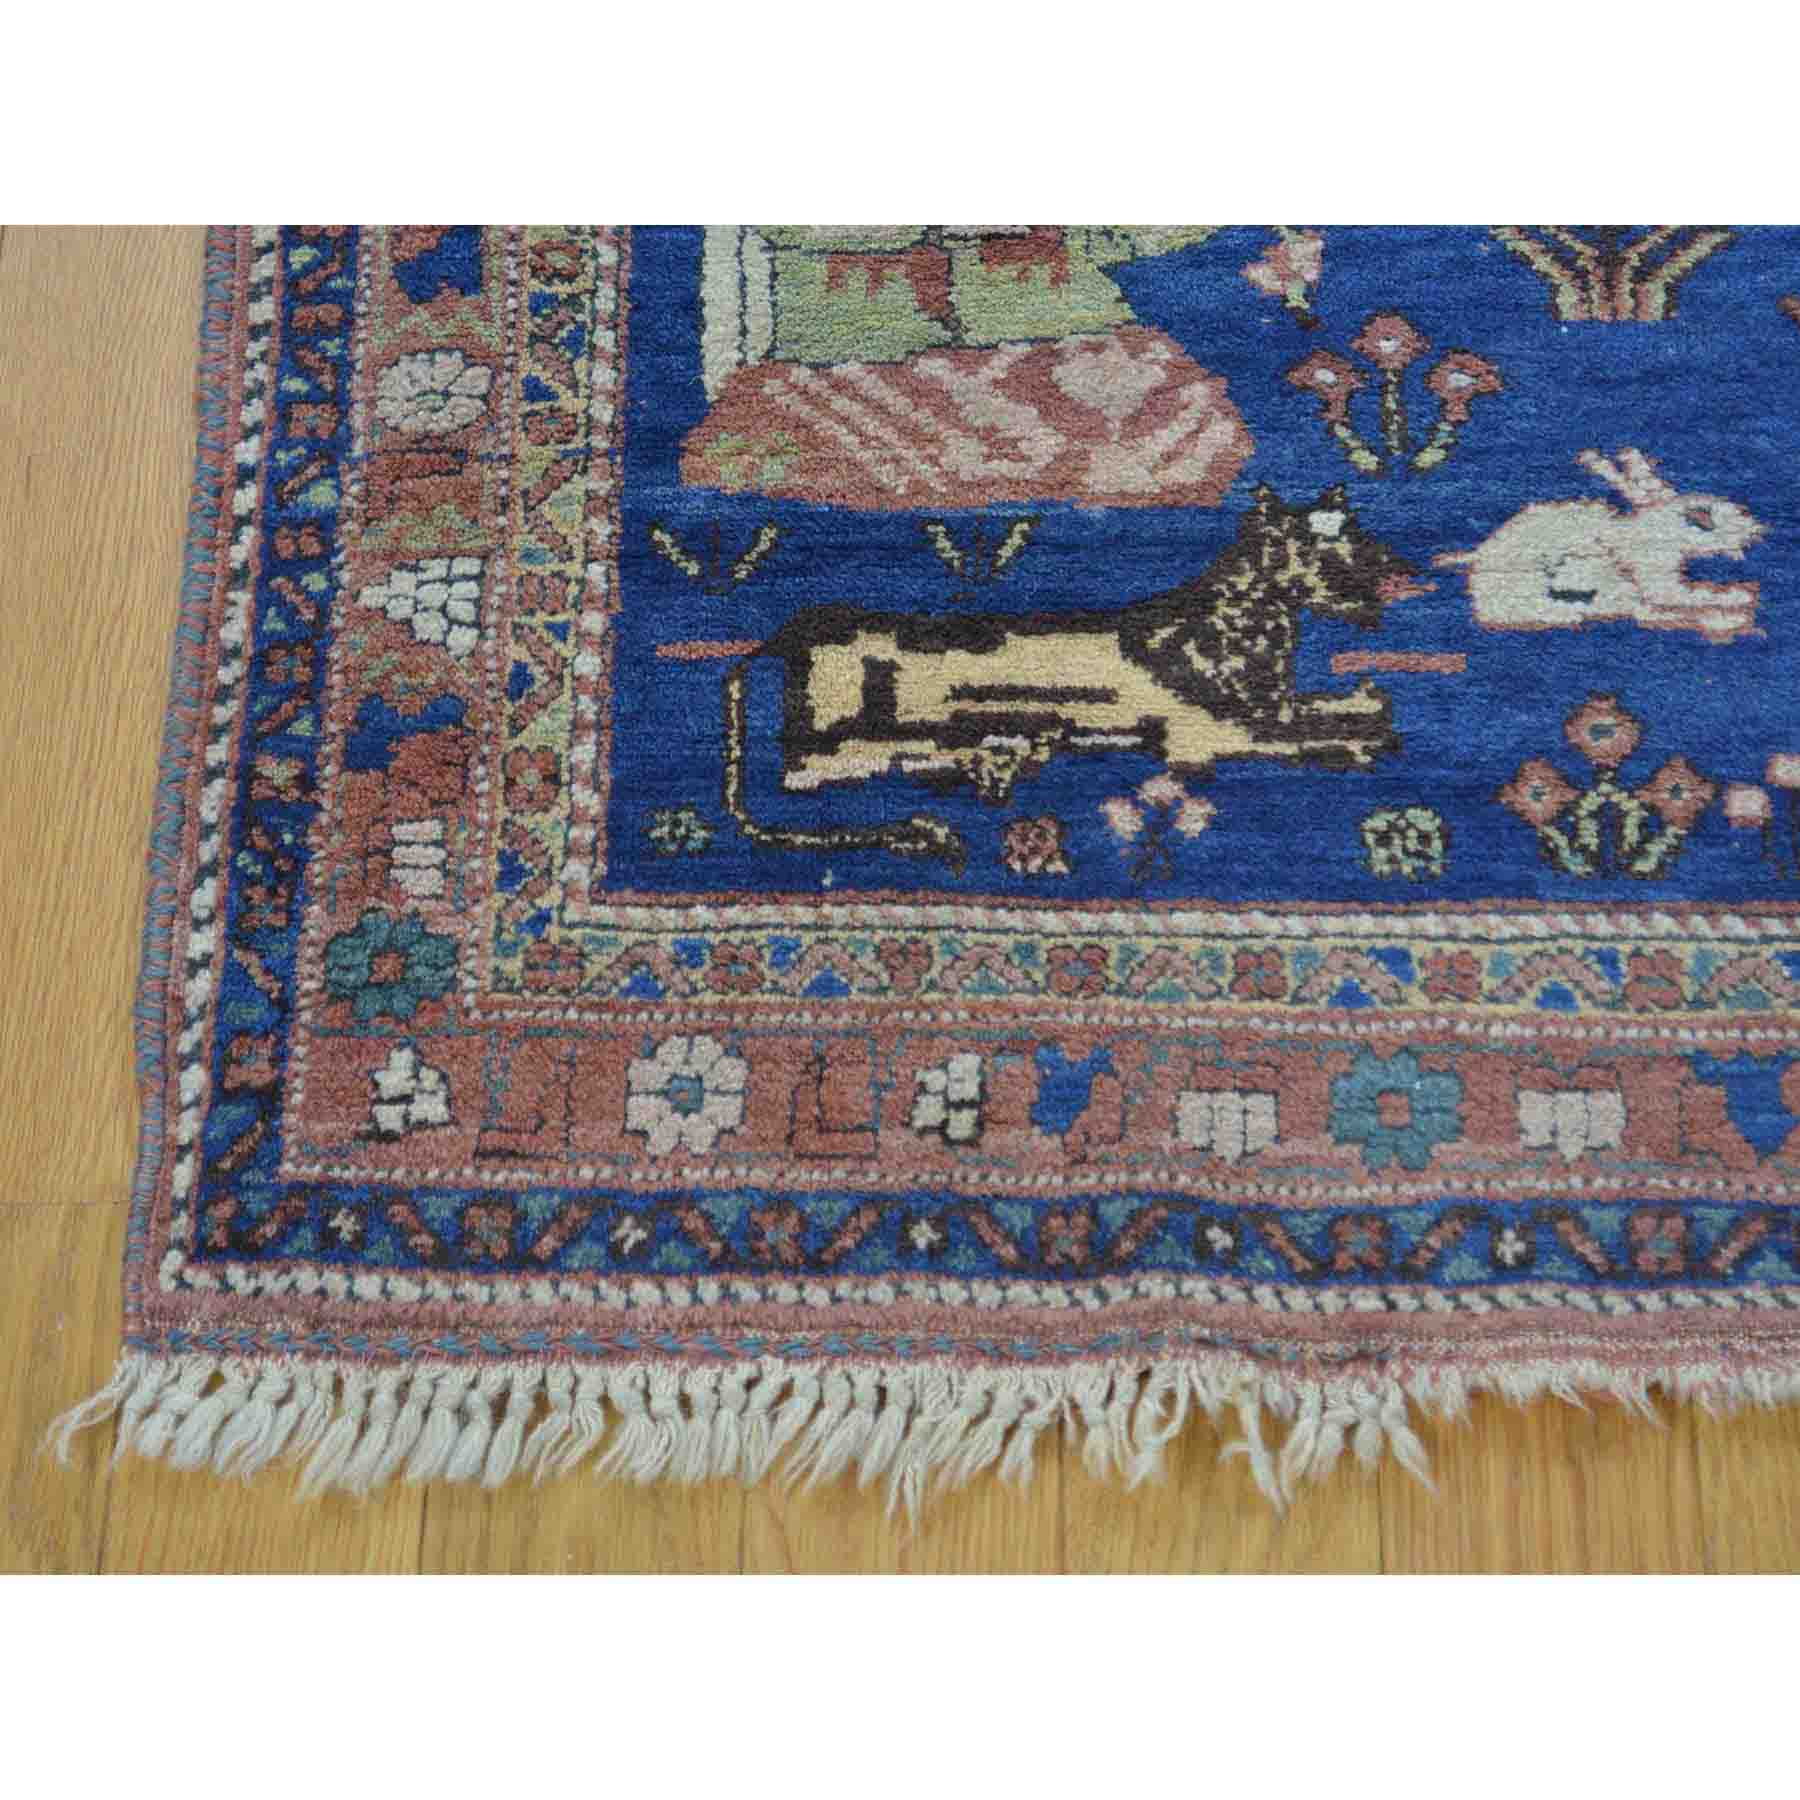 Antique-Hand-Knotted-Rug-141165